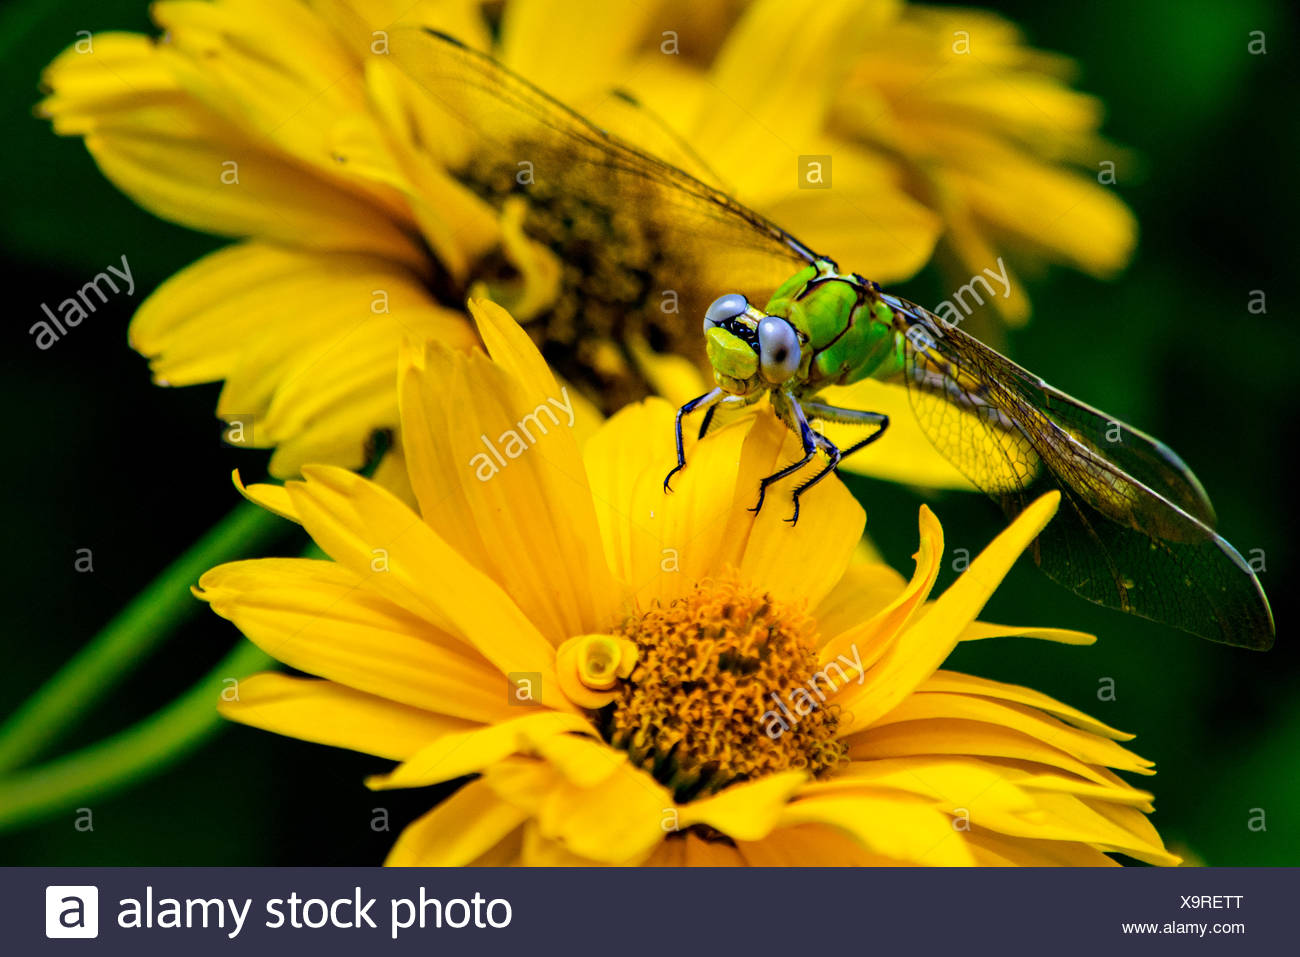 Libellule assis sur fleur jaune Photo Stock